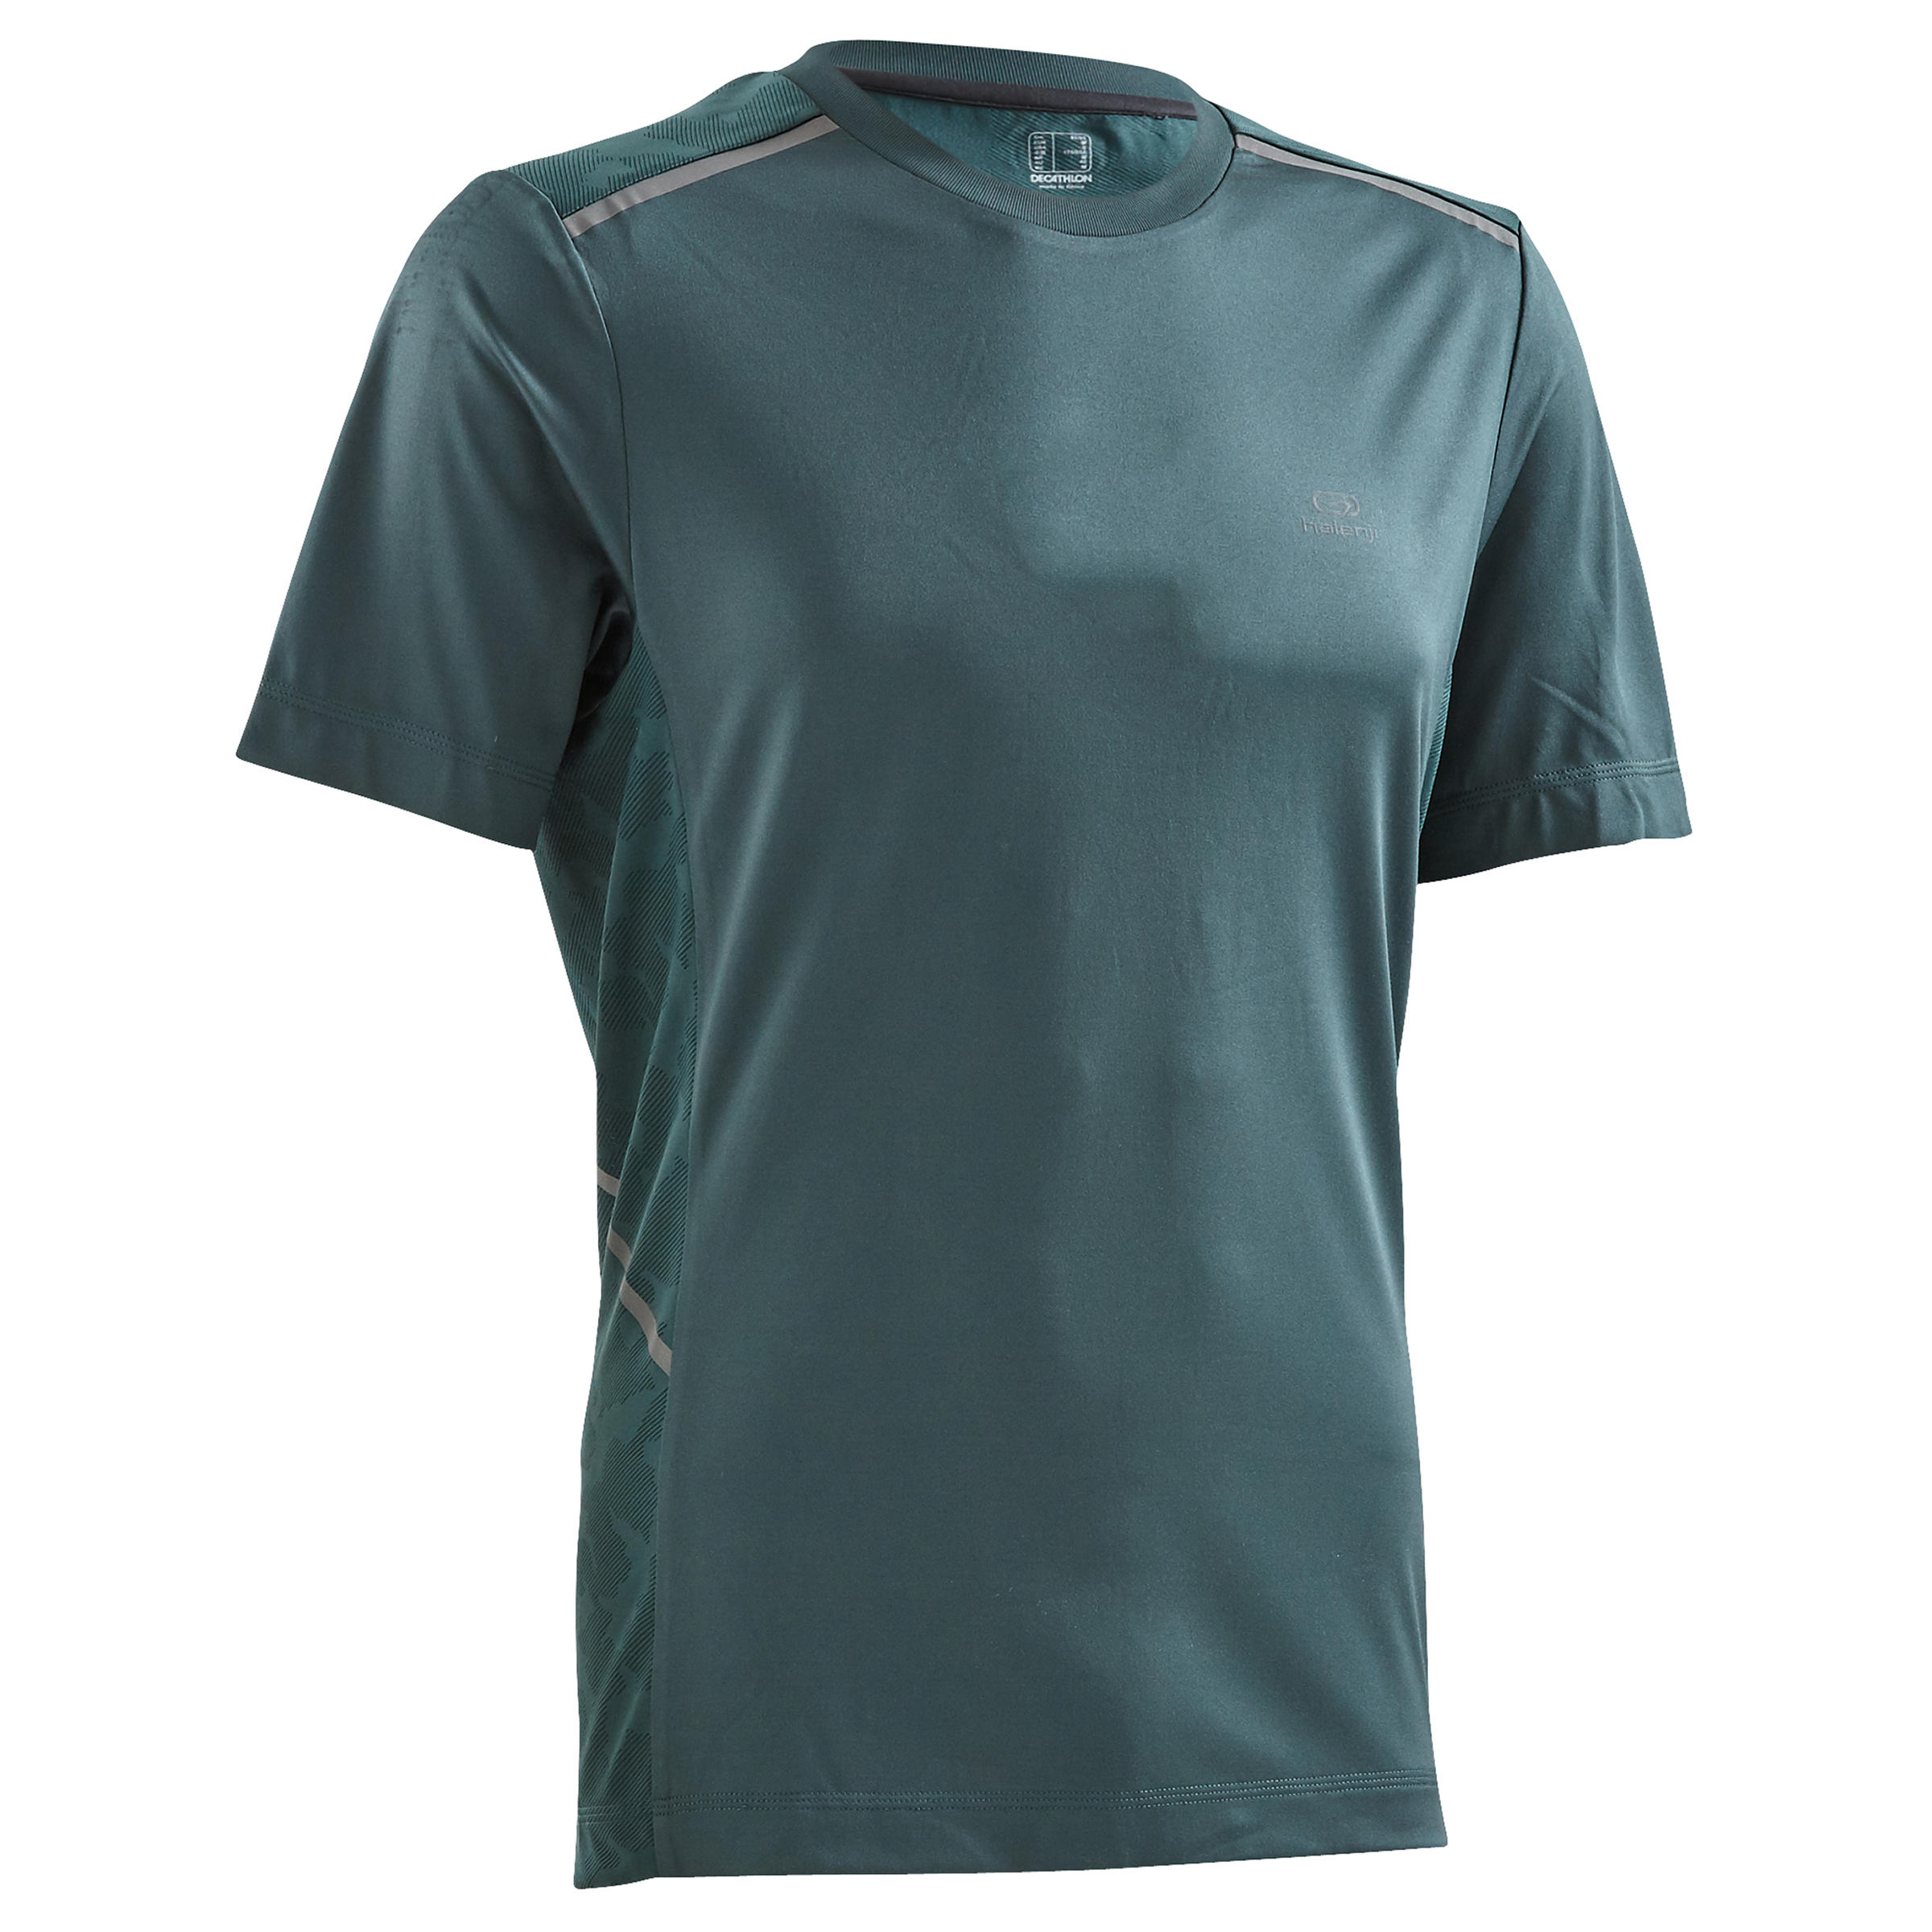 PLAYERA DE RUNNING PARA HOMBRE RUN DRY+ BREATHE VERDE MELEZE